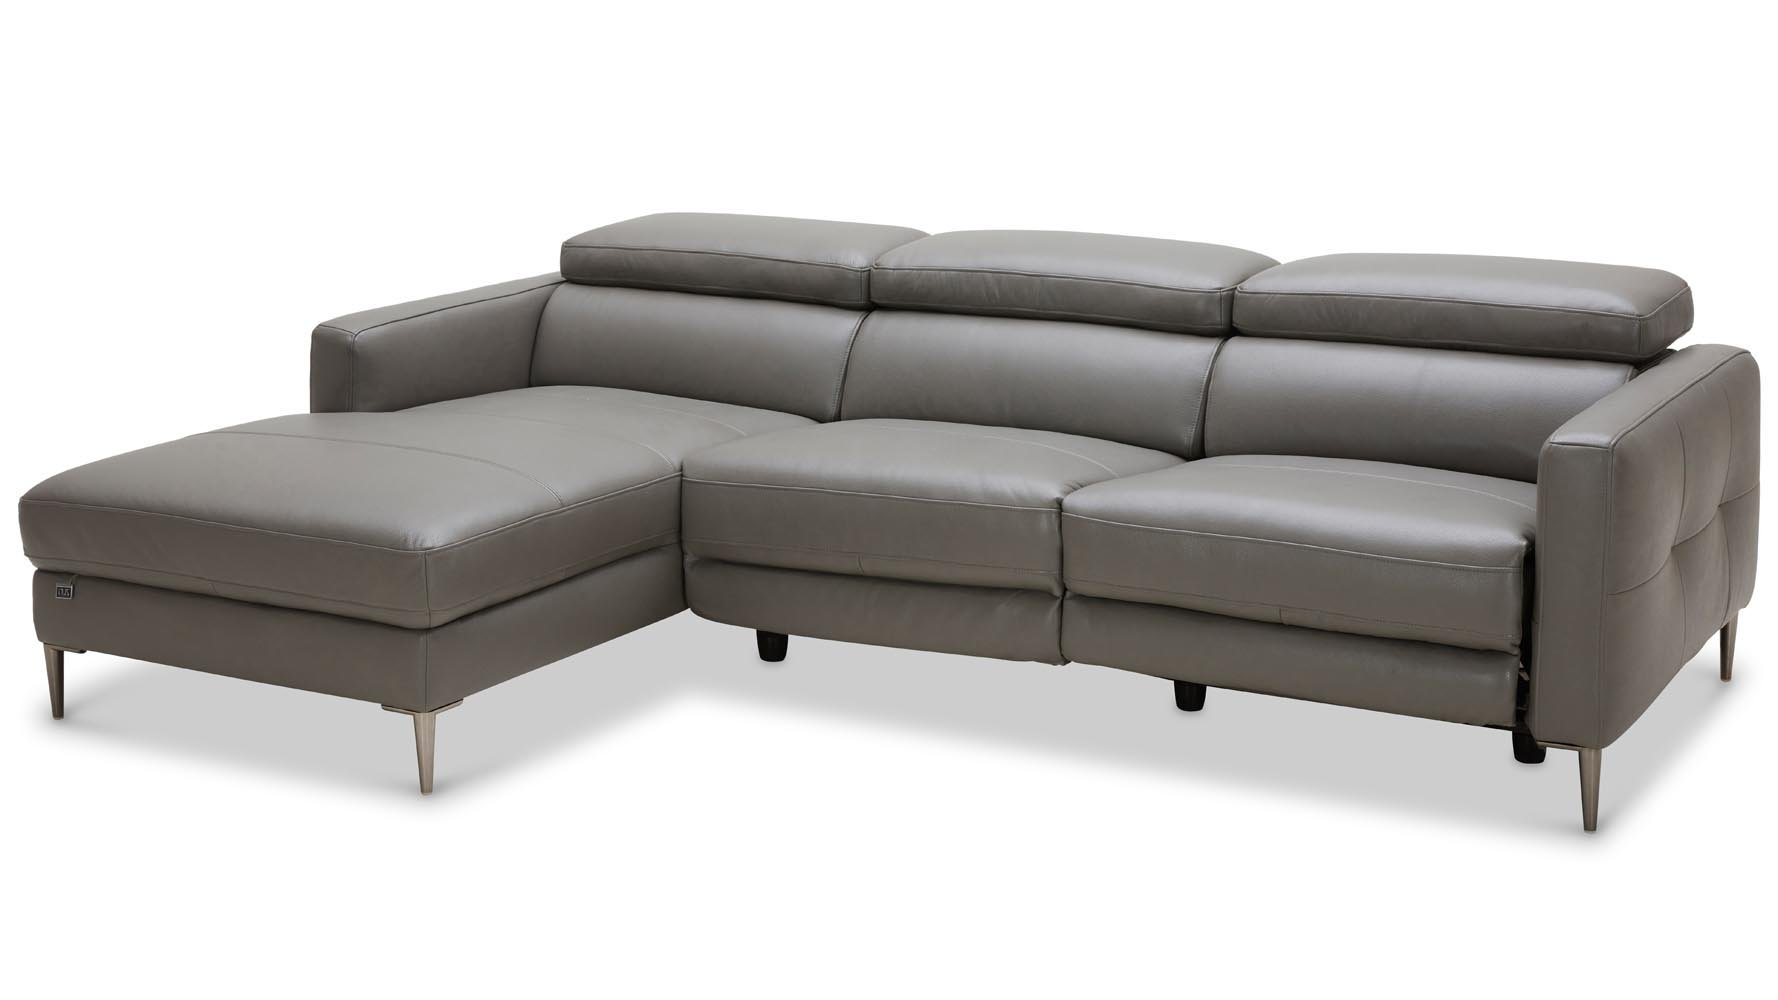 Modern Grey Leather Reno Sectional with Power Recliner Seat | Zuri ...